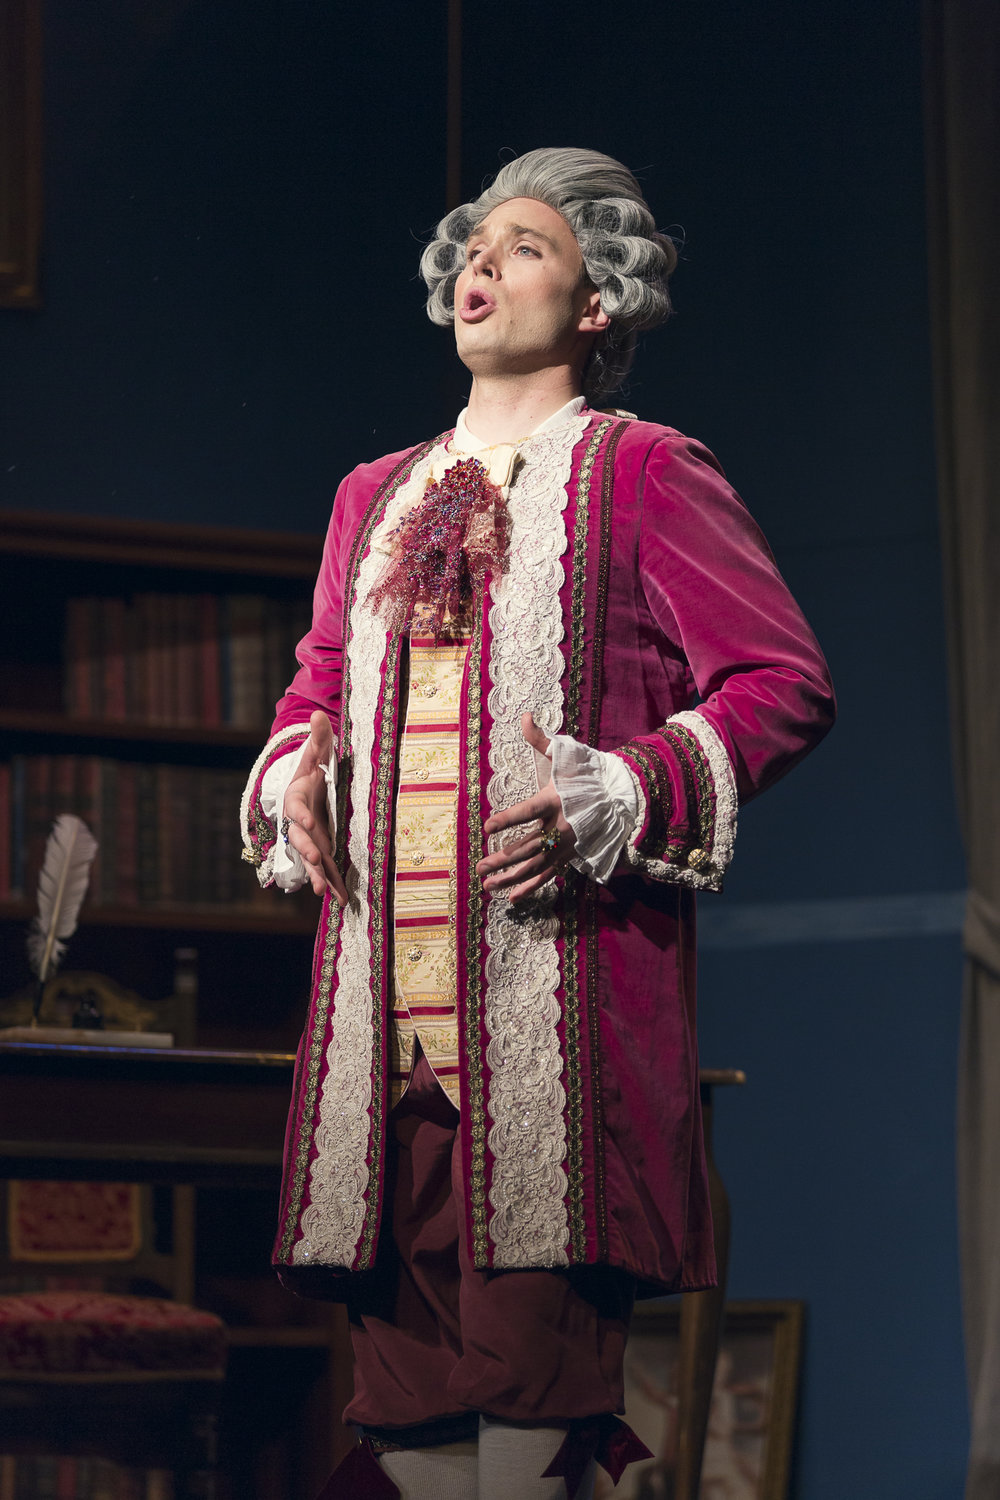 Tyler Reece in the role of Count Almaviva (Photo by Matt Perko)